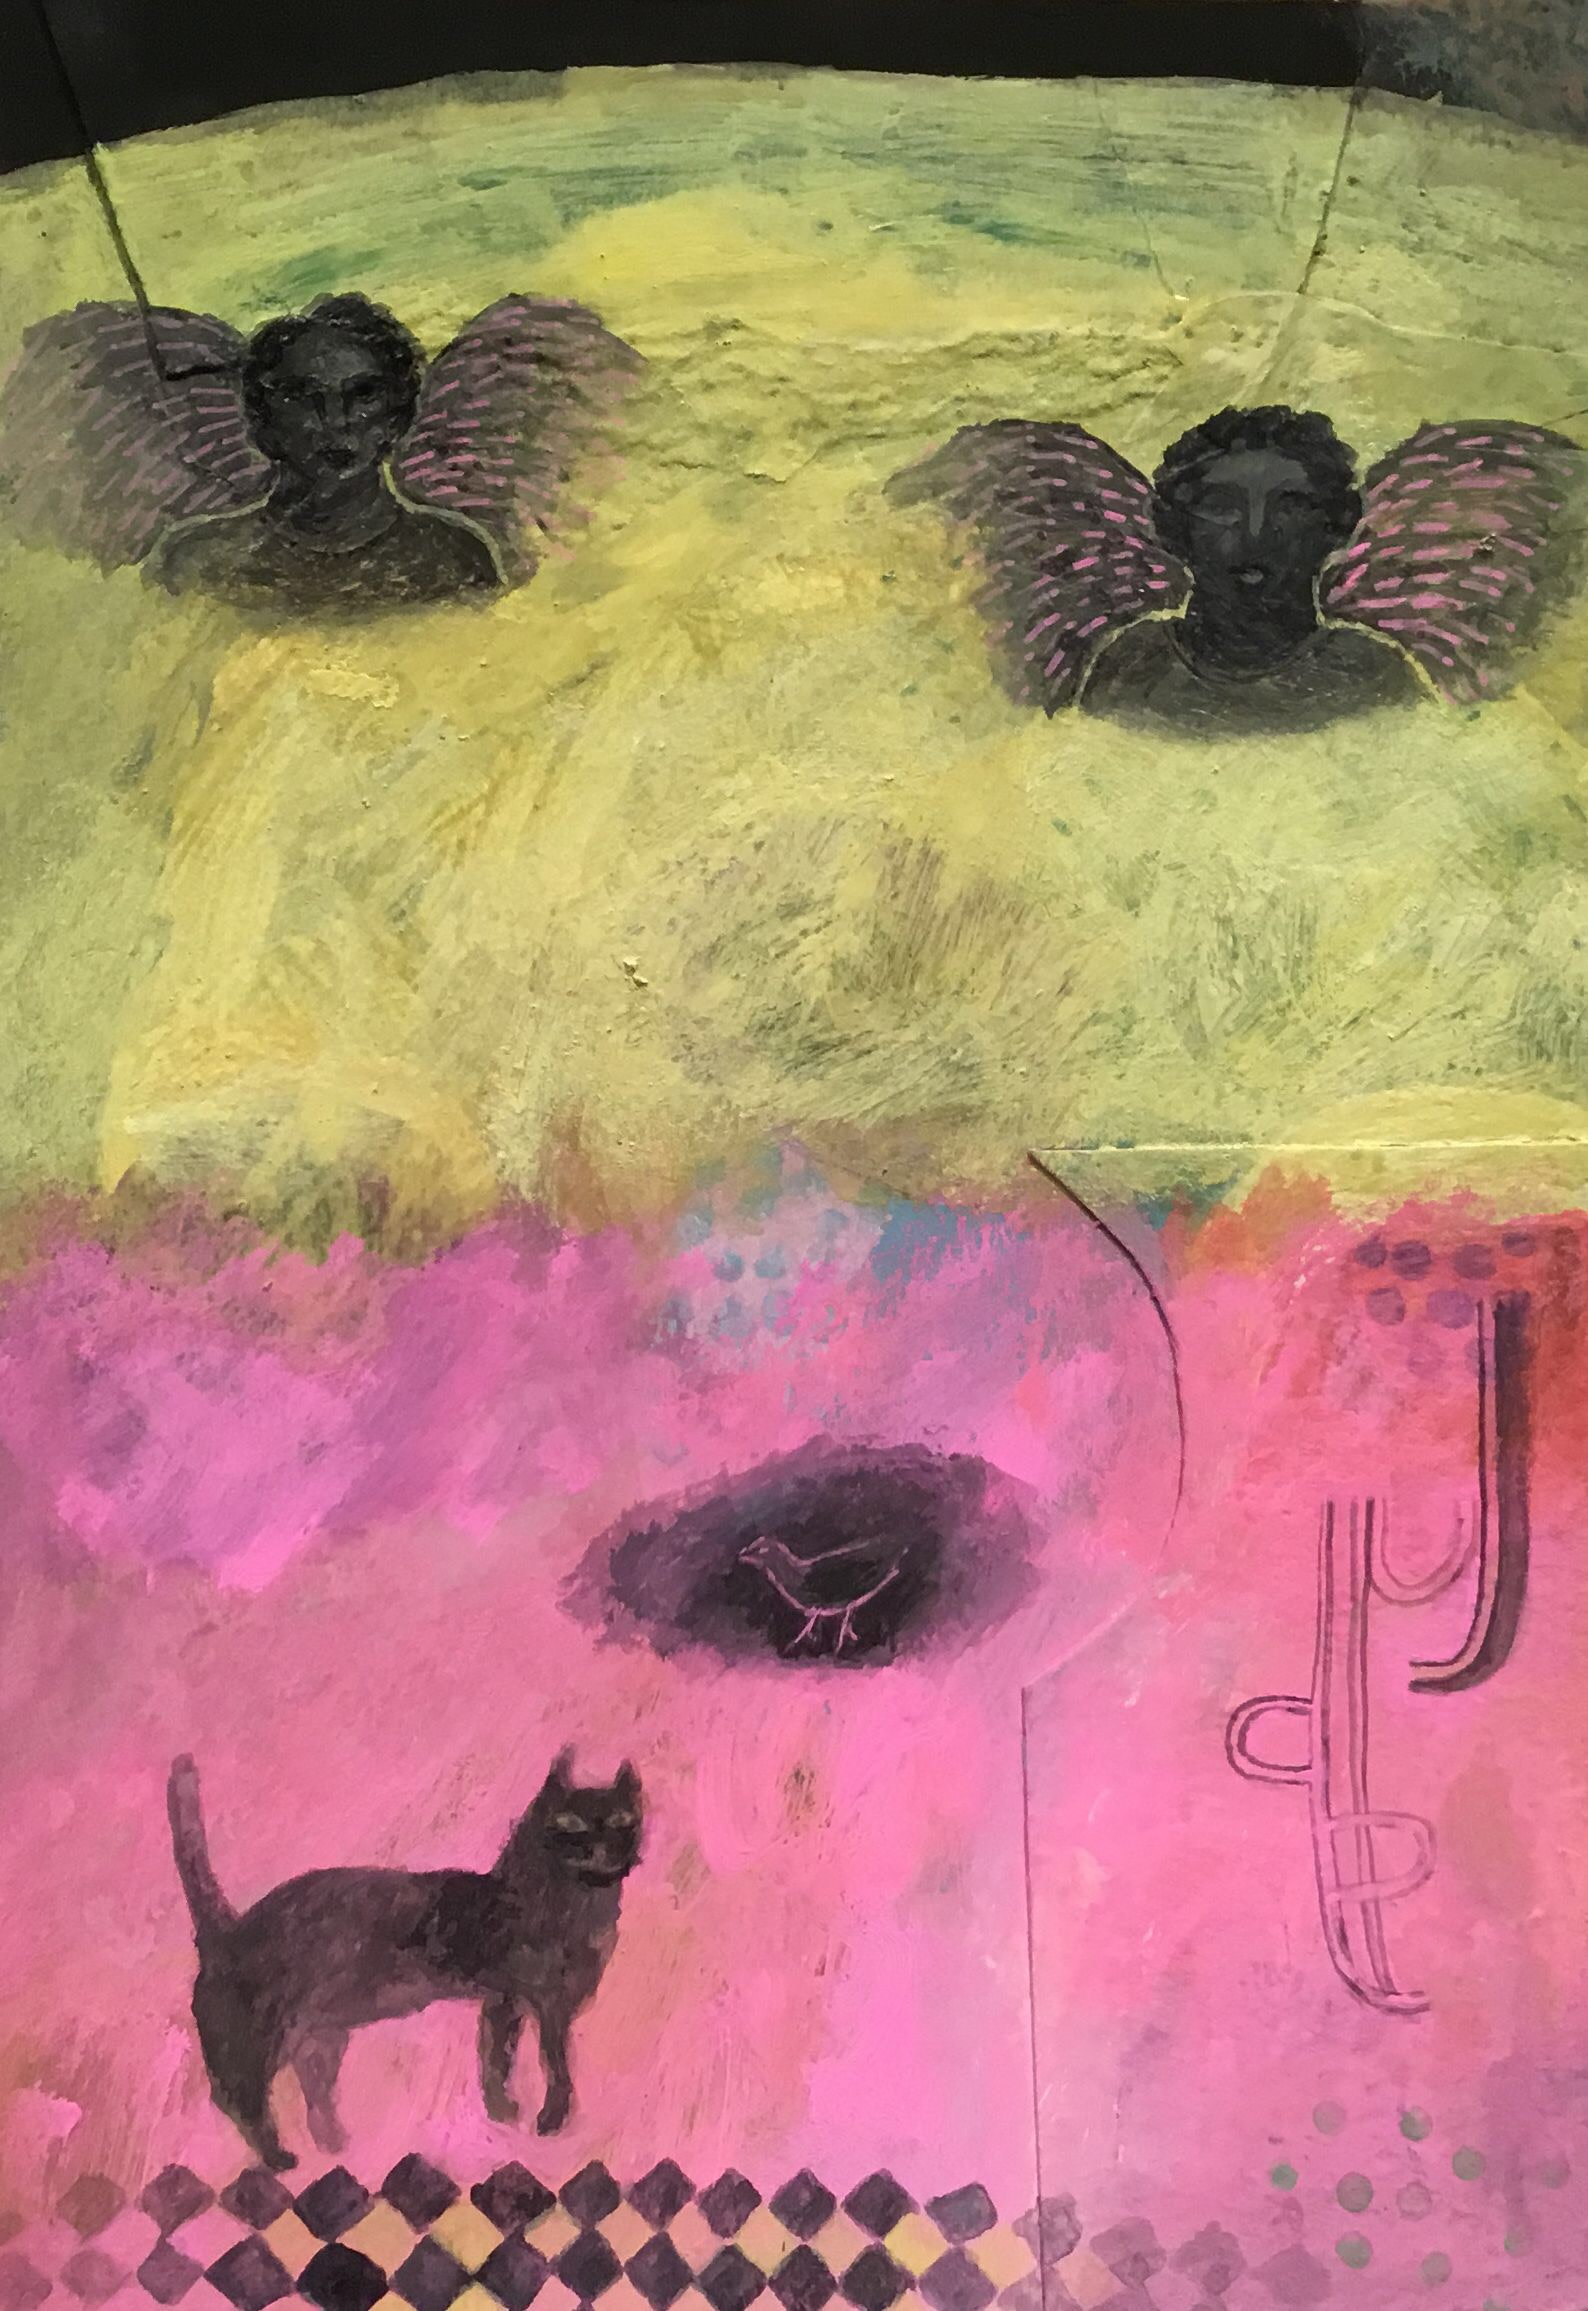 """<span class=""""link fancybox-details-link""""><a href=""""/artists/146-gertie-young/works/12333-gertie-young-cat-under-the-influence-of-angels/"""">View Detail Page</a></span><div class=""""artist""""><span class=""""artist""""><strong>Gertie Young</strong></span></div><div class=""""title""""><em>Cat under the Influence of Angels</em></div><div class=""""medium"""">acrylic & collage</div><div class=""""dimensions"""">Frame: 36 x 28 cm<br /> Artwork: 26 x 18 cm</div><div class=""""price"""">£250.00</div>"""